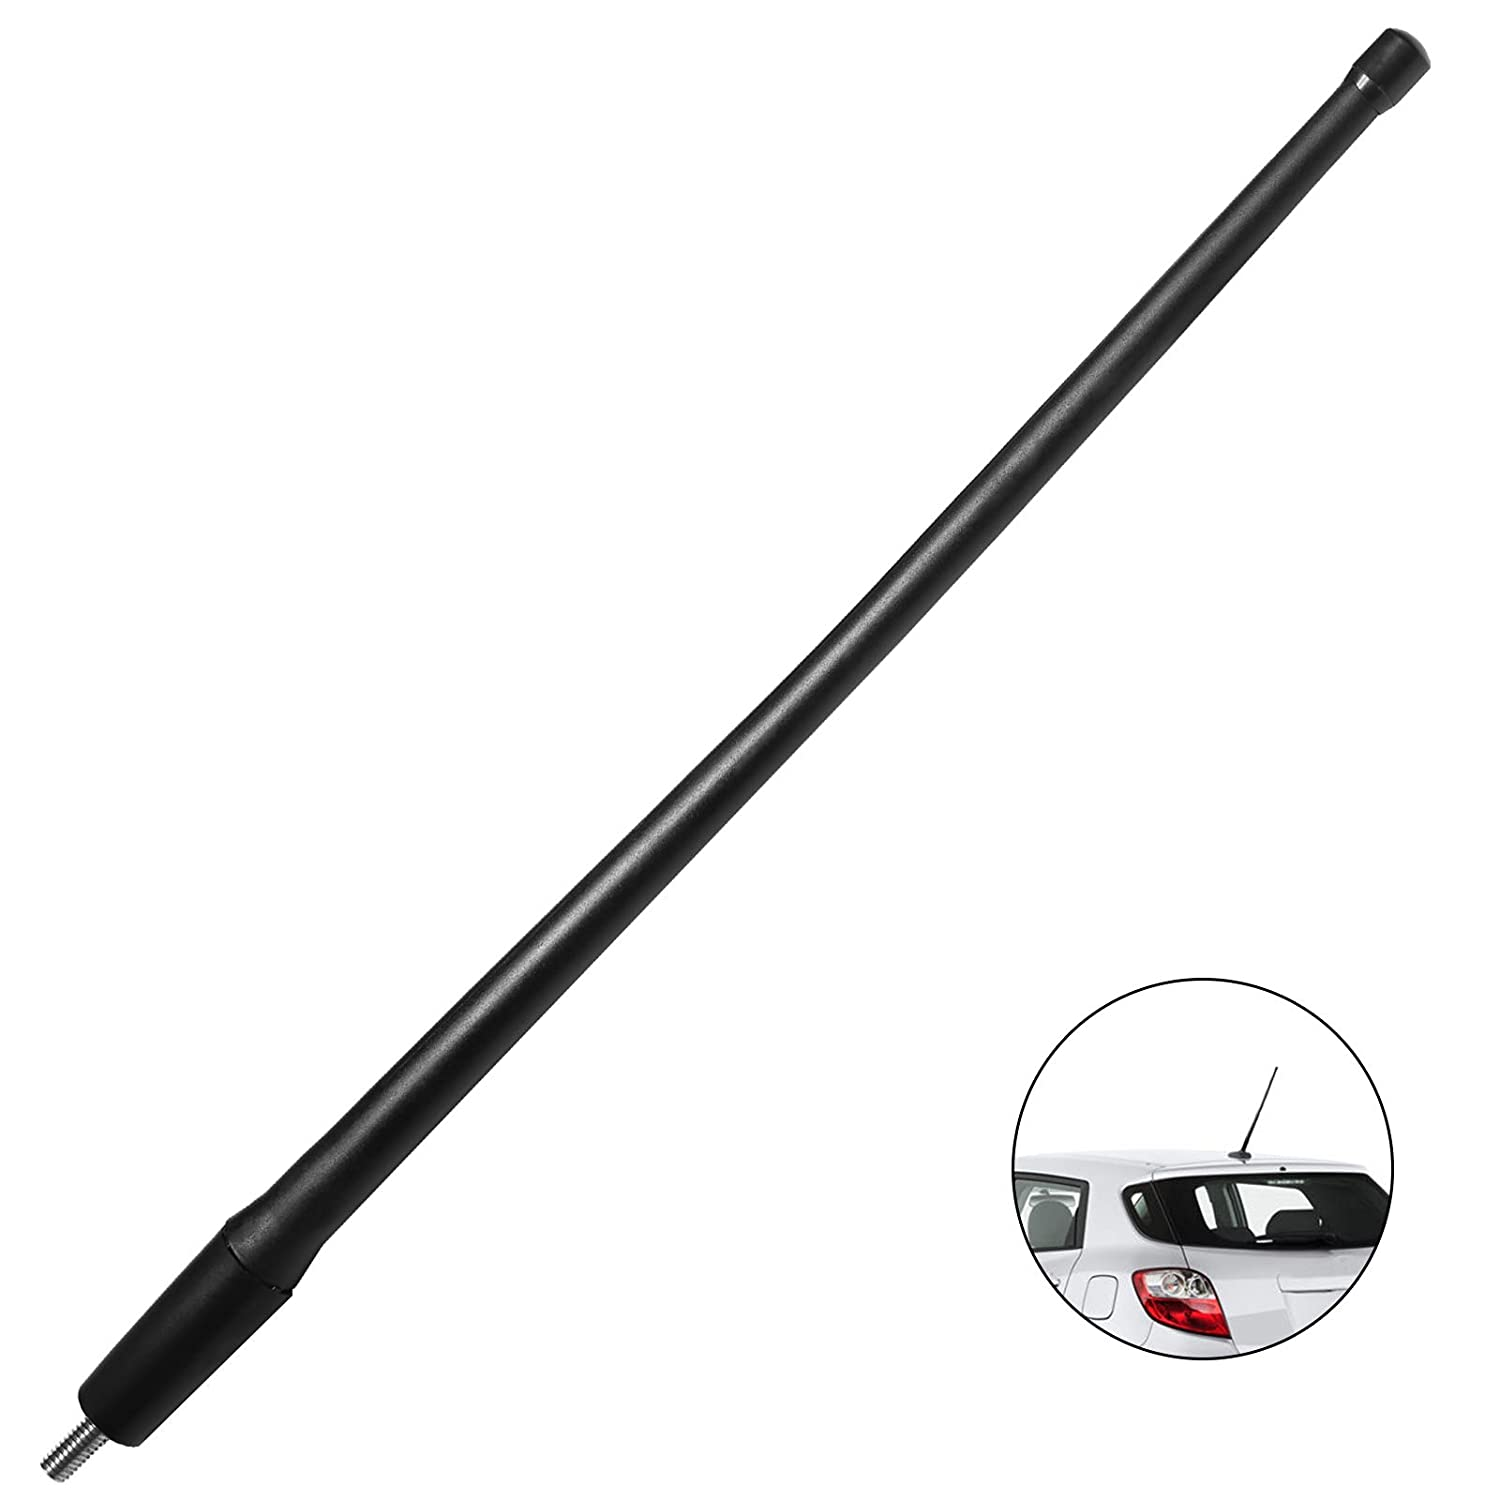 Black JAPower Replacement Antenna Compatible with Toyota Matrix 2003-2013 13 inches